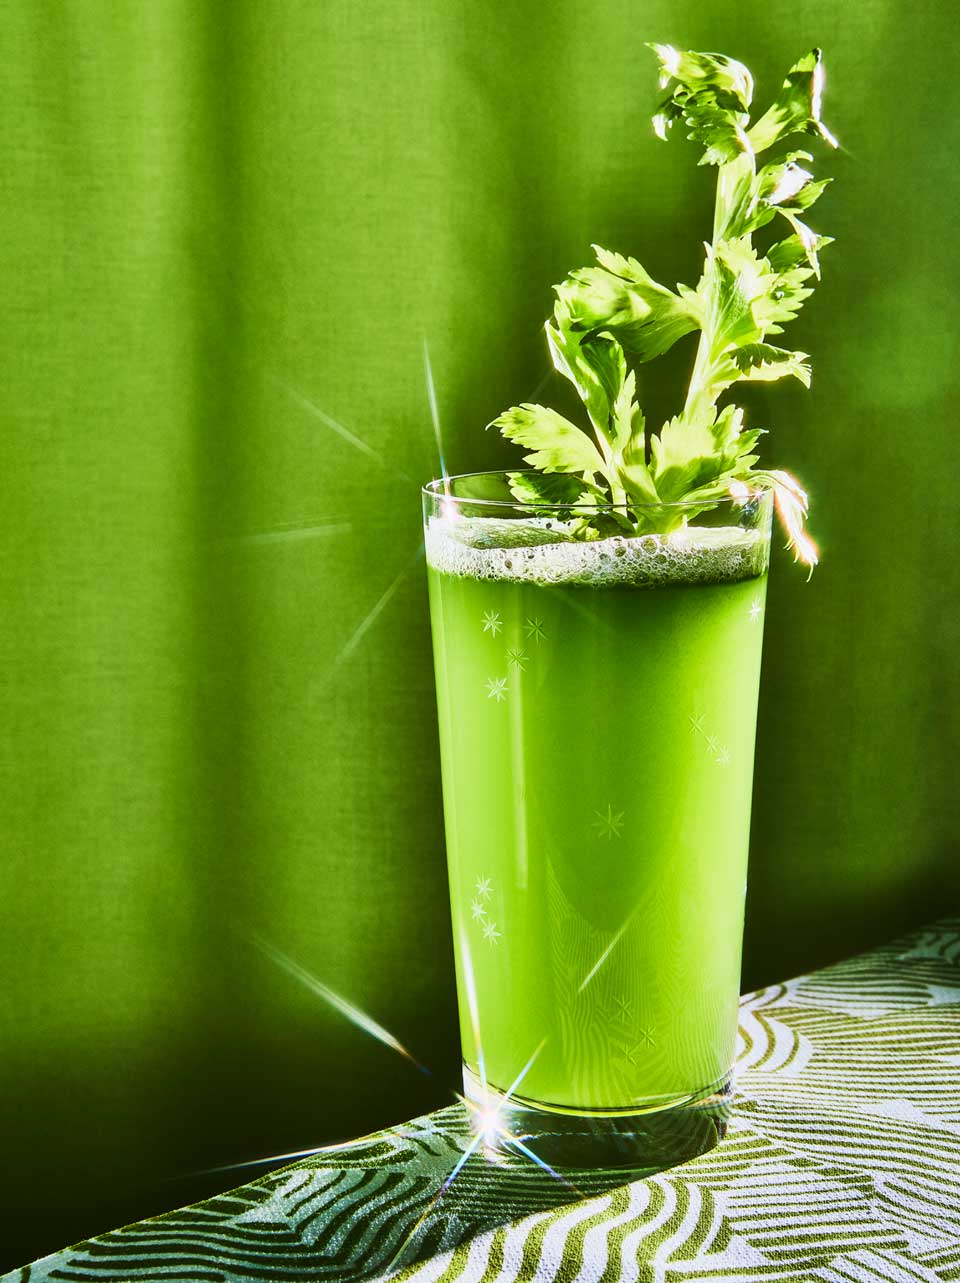 celery juice in sparkling glass on green background with stalk of celery in cup